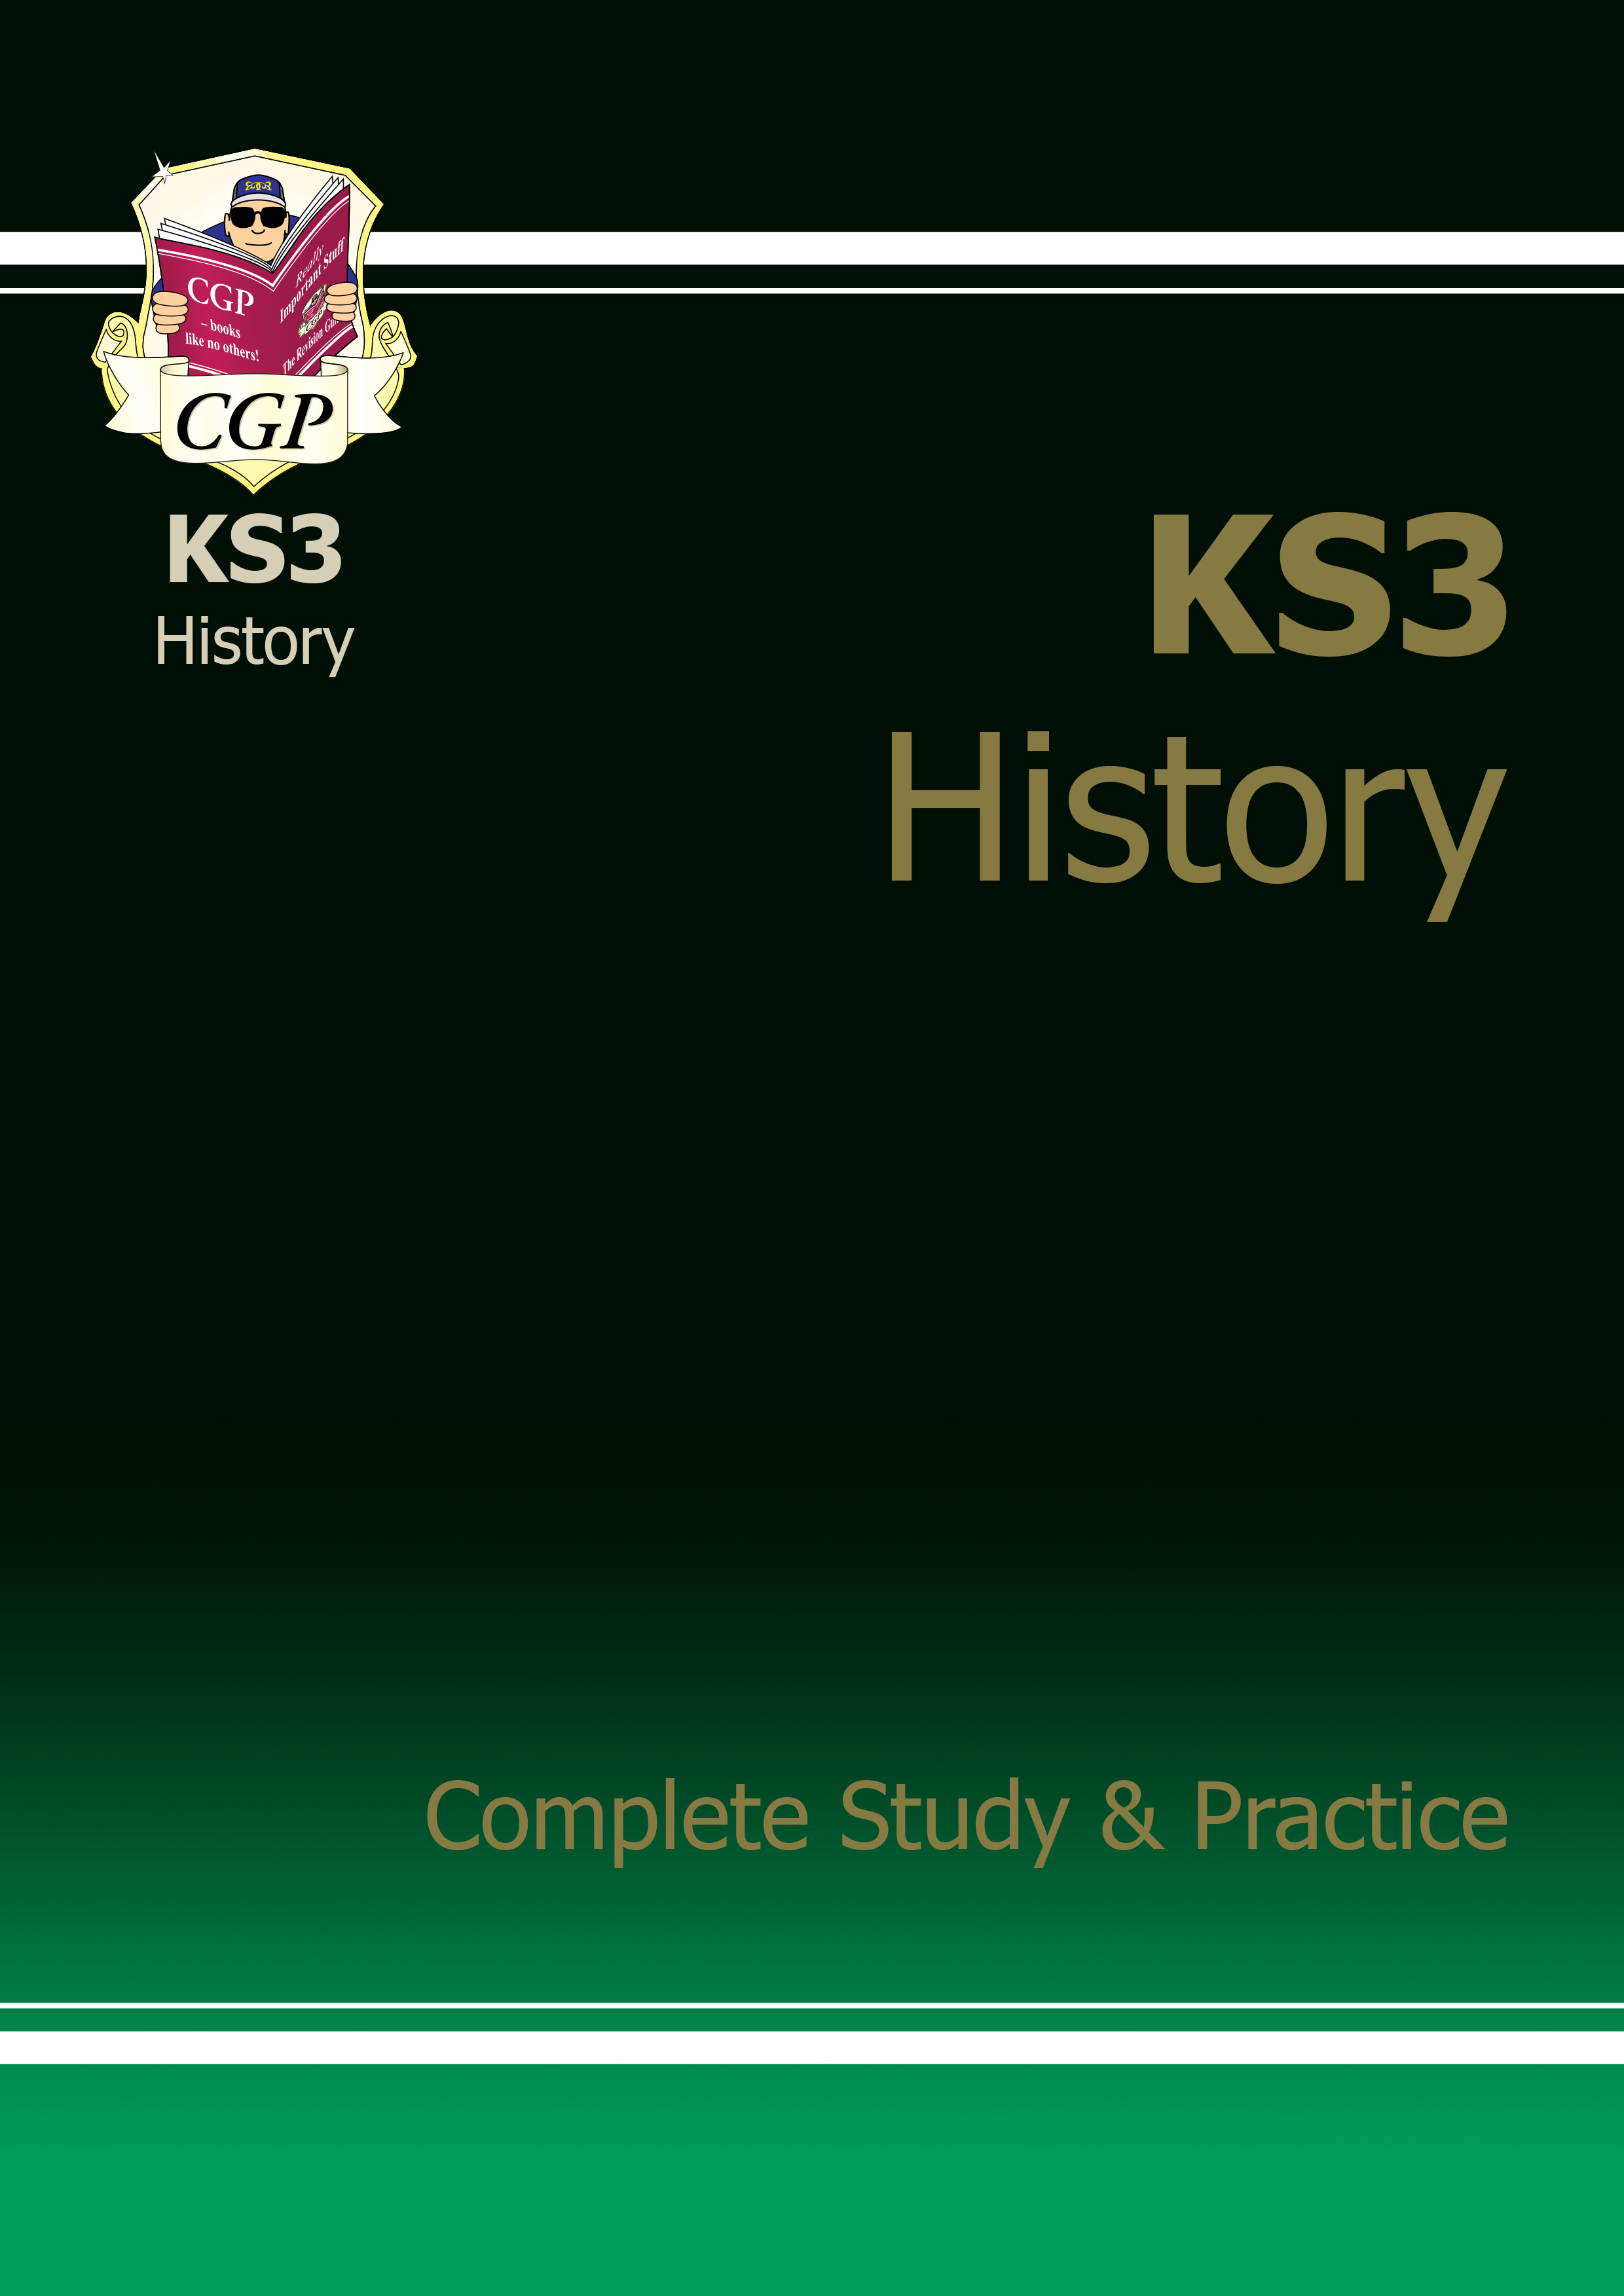 HHS33DK - KS3 History Complete Study & Practice